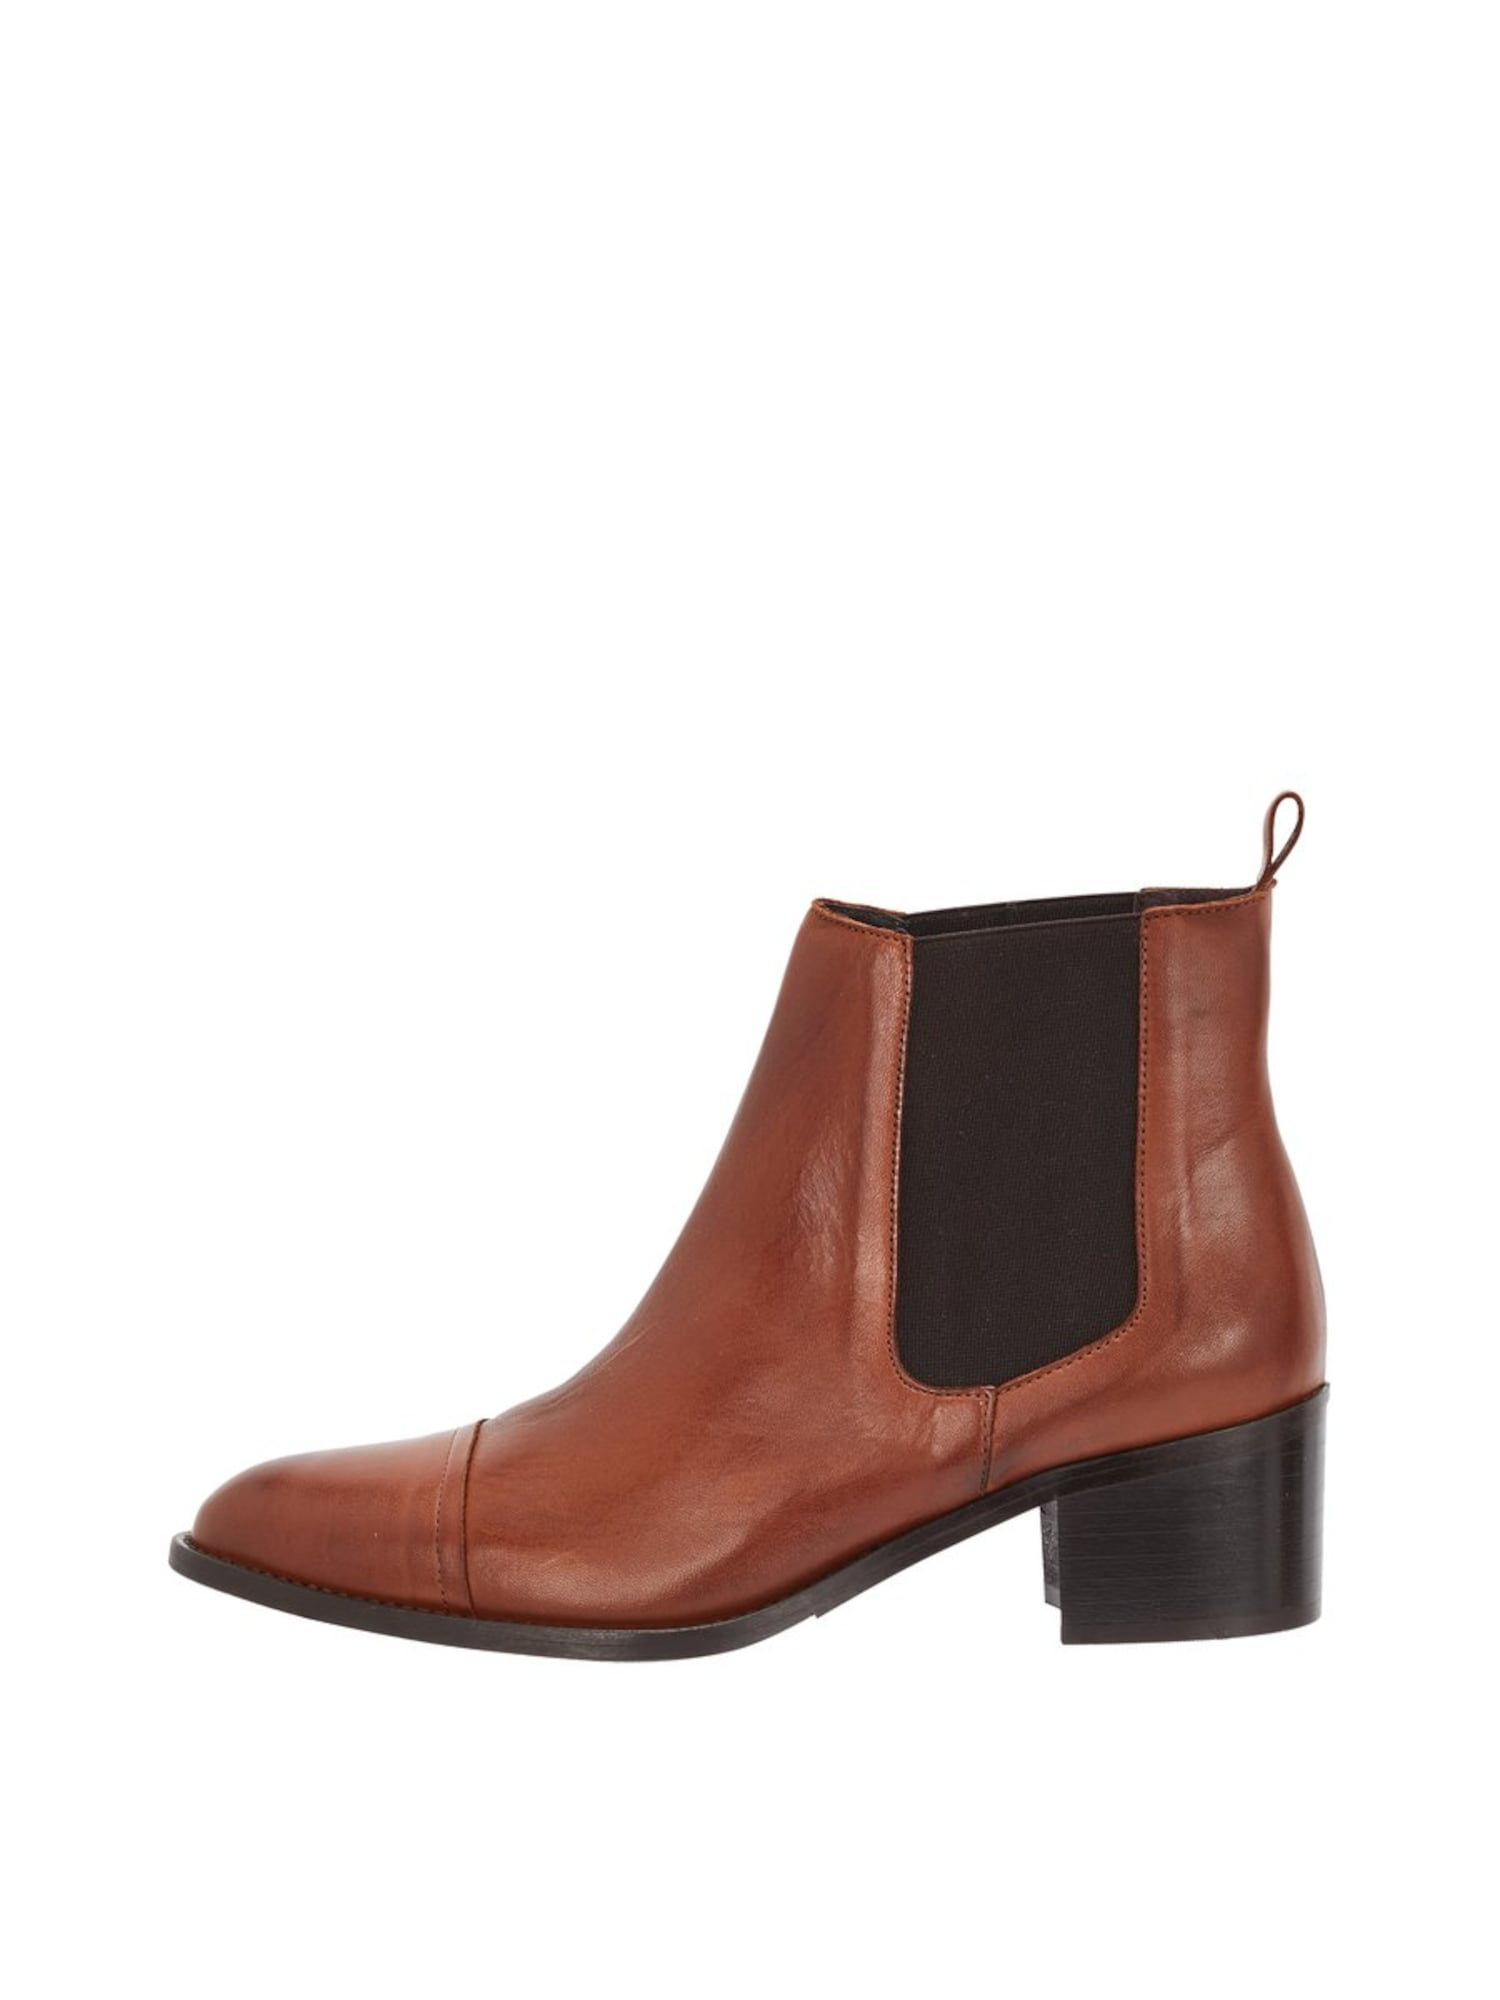 Chelsea Boots | Schuhe > Boots > Chelsea-Boots | Bianco